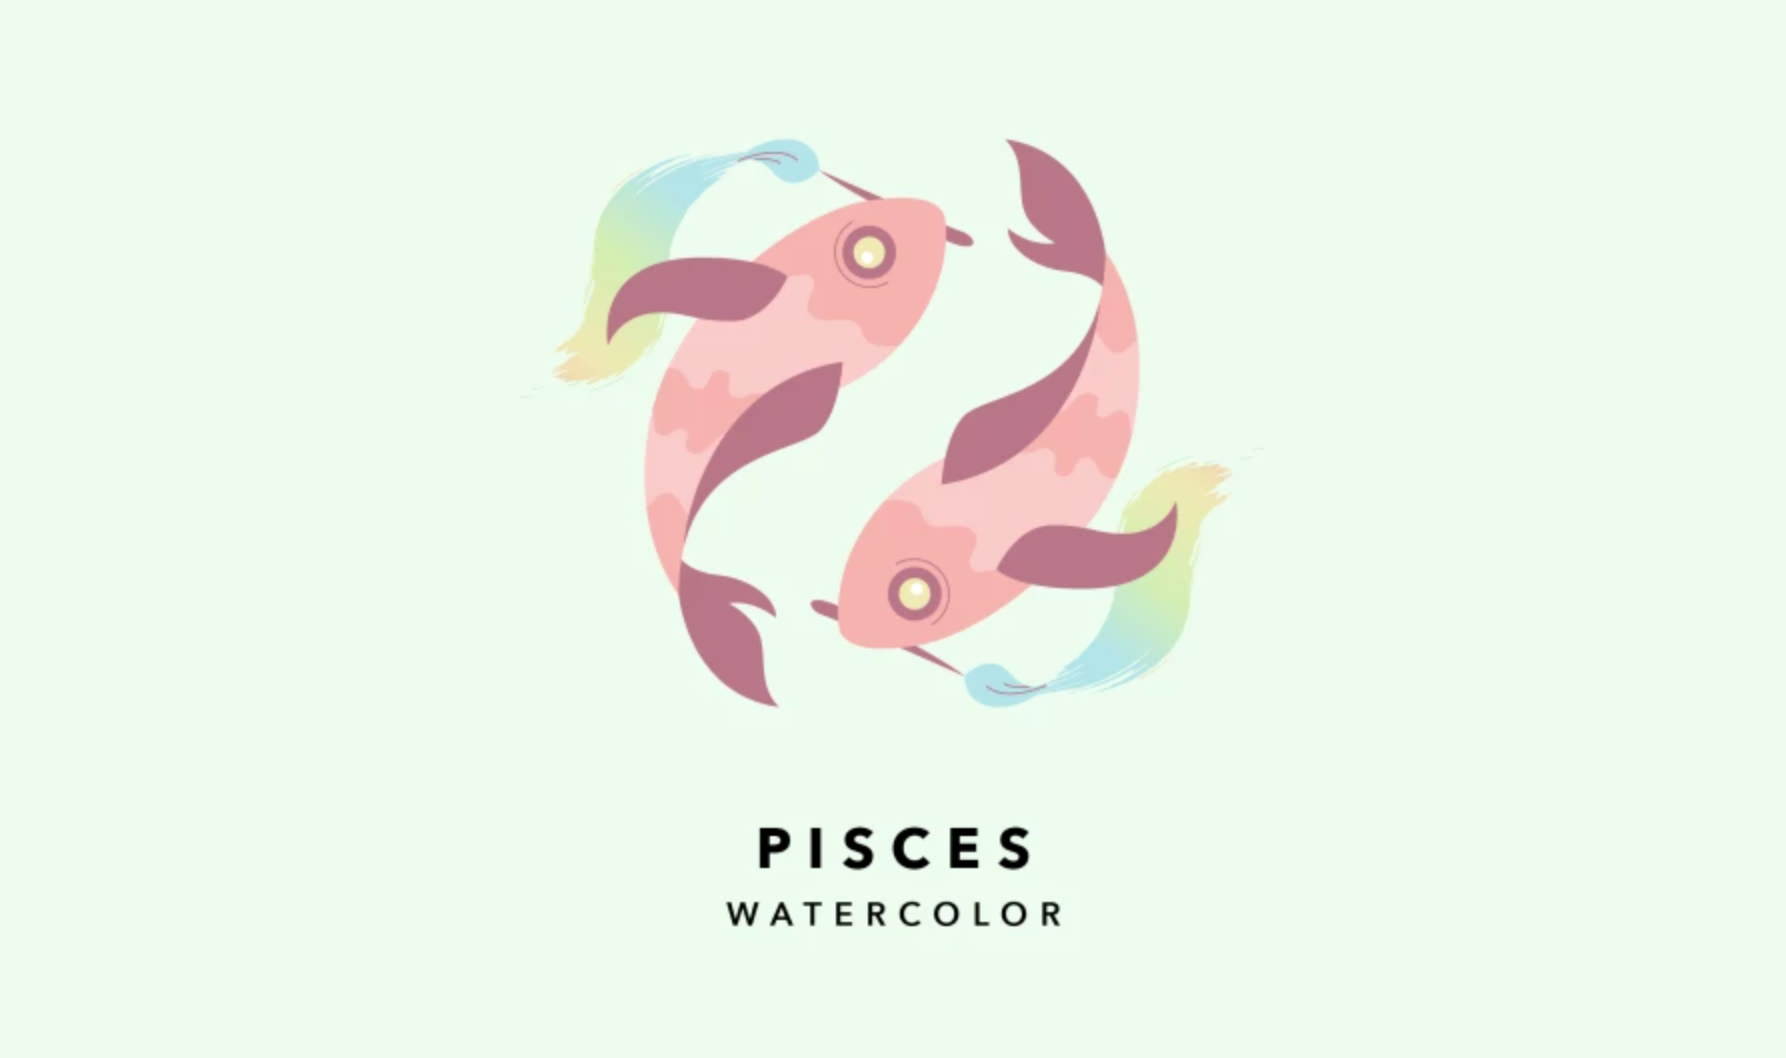 pisces watercolor